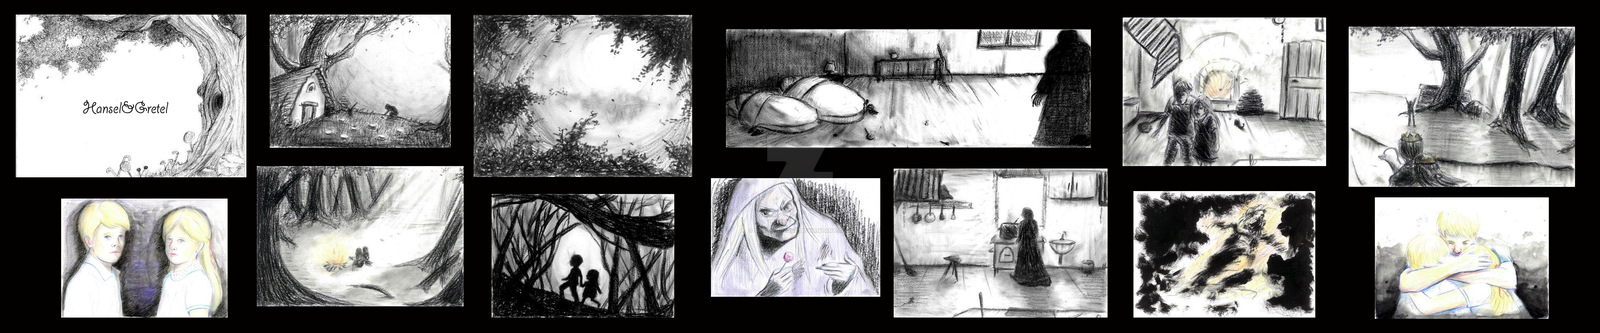 +Illustrated story of Hansel and Gretel+ by SaraFormosa